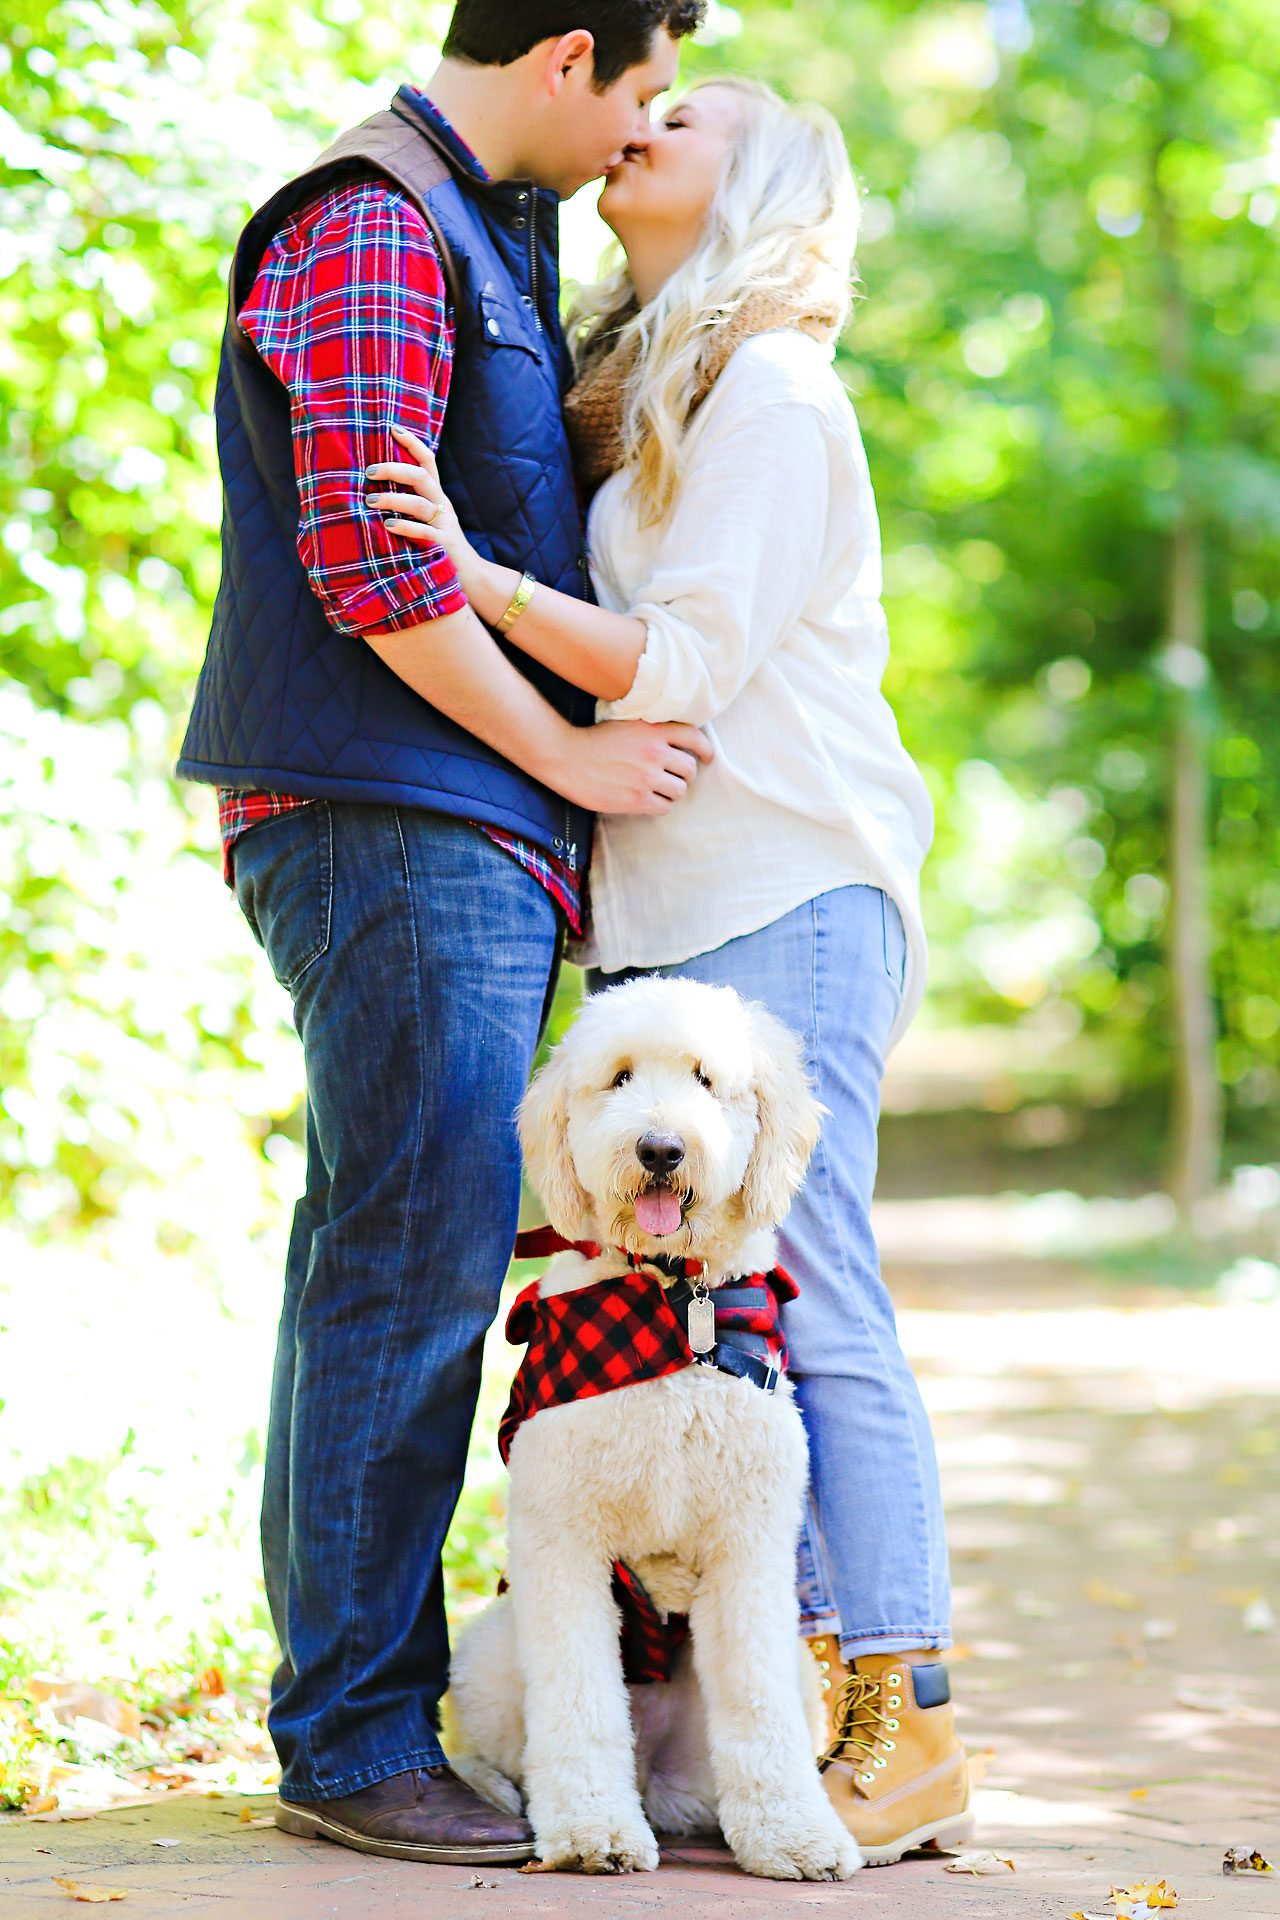 006 Taylor AJ Bloomington Engagement Session